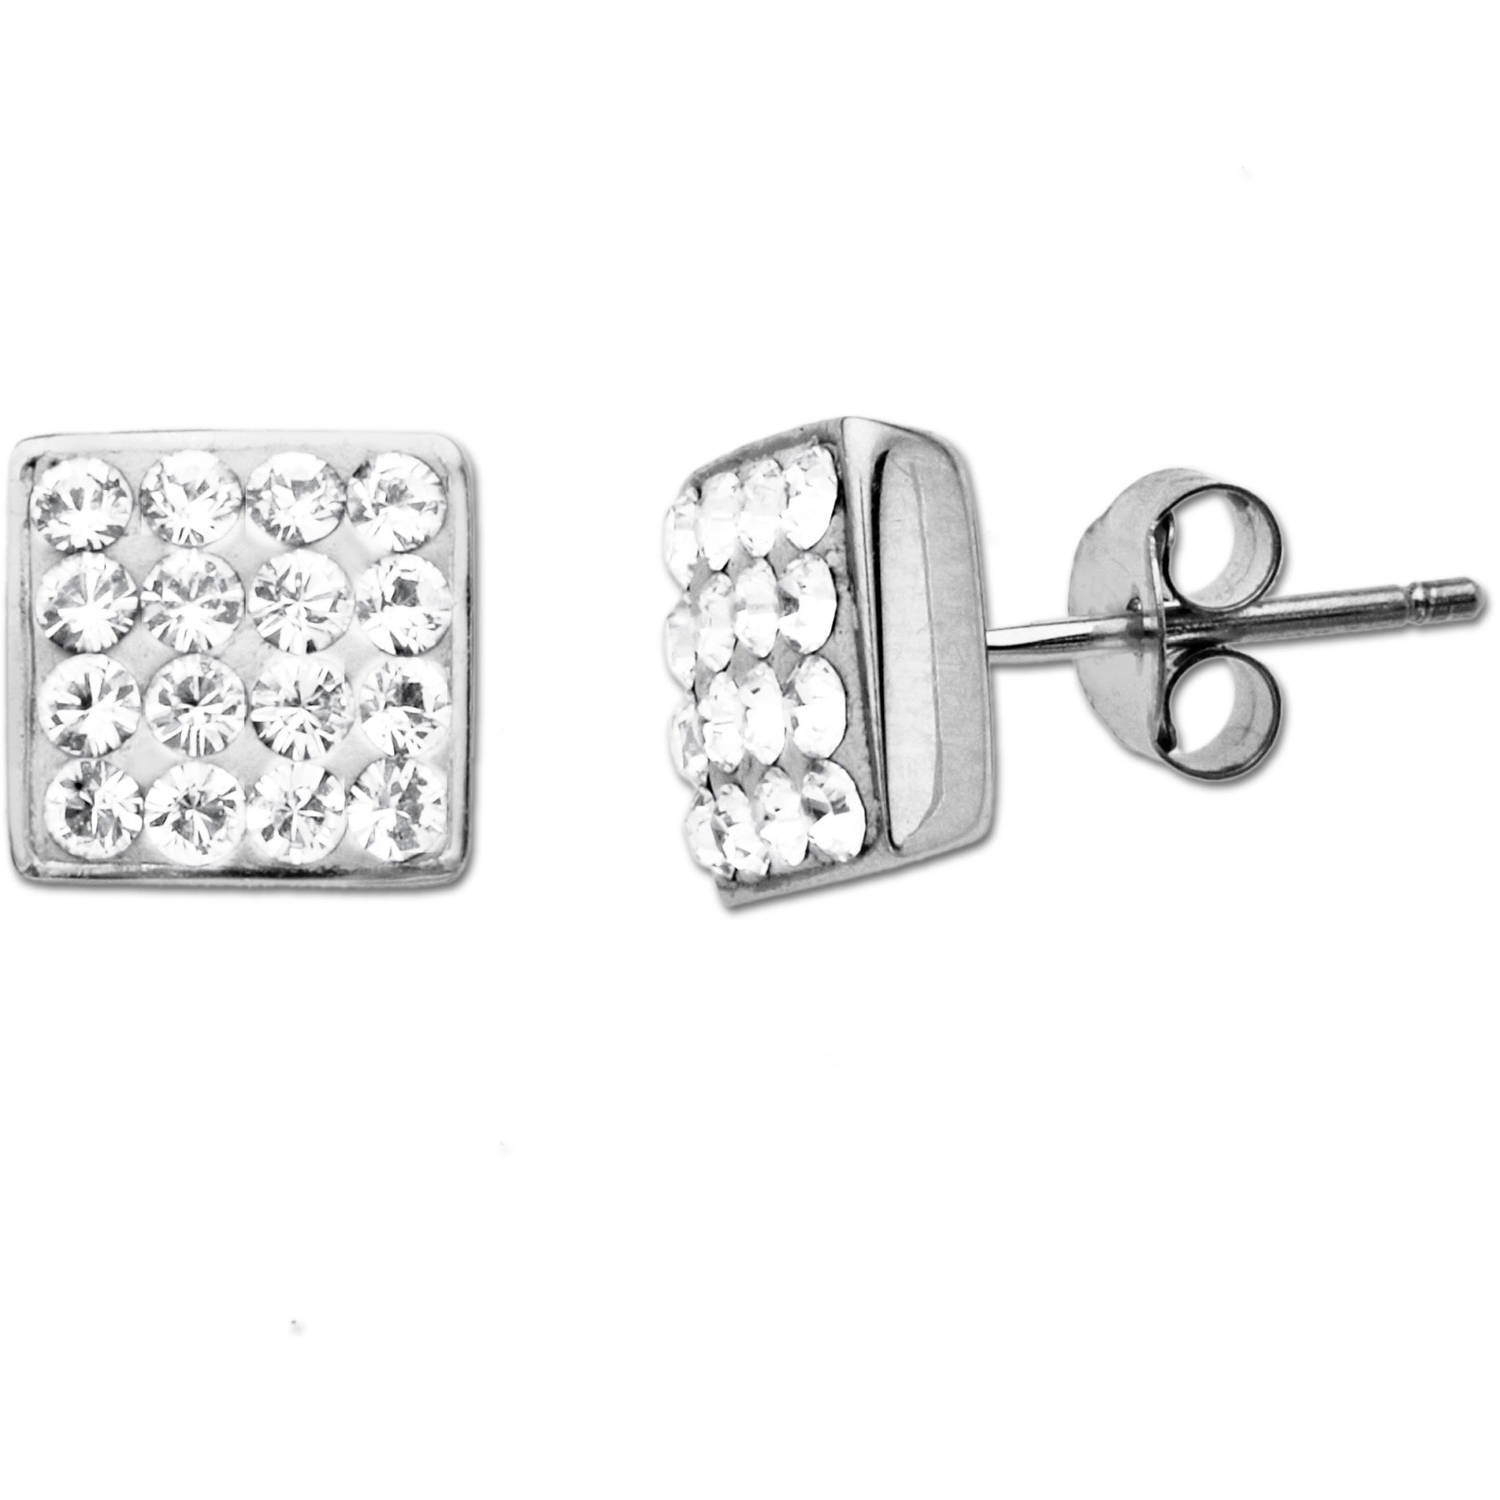 Luminesse Sterling Silver White Earrings made with Swarovski Elements